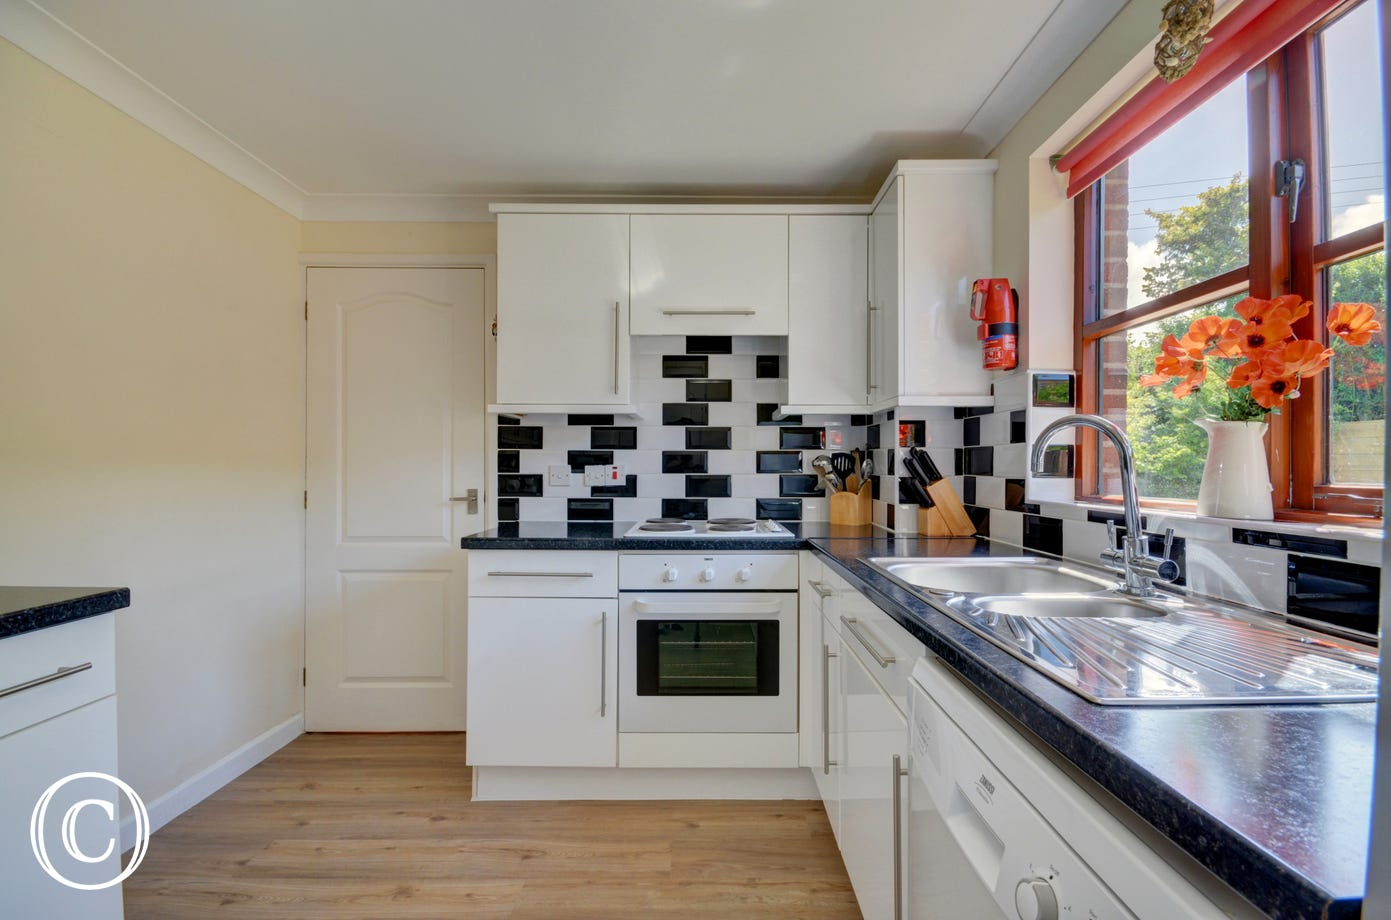 Modern well equipped kitchen which overlooks the garden